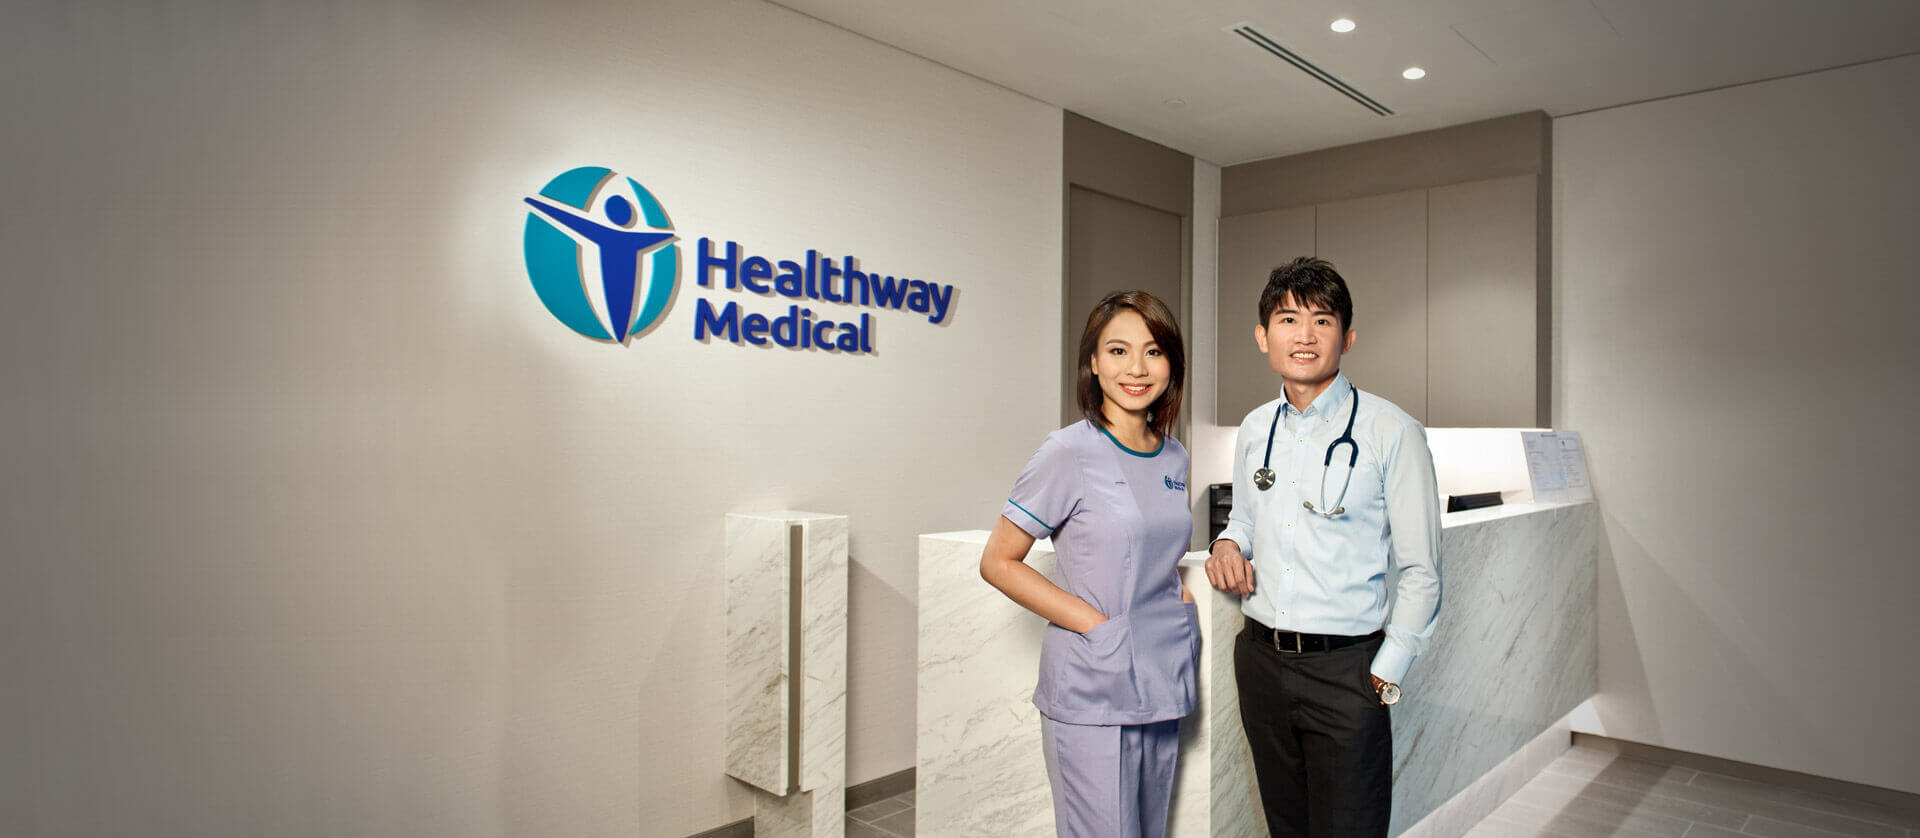 Healthway Medical Group - Empowering Healthier Lives